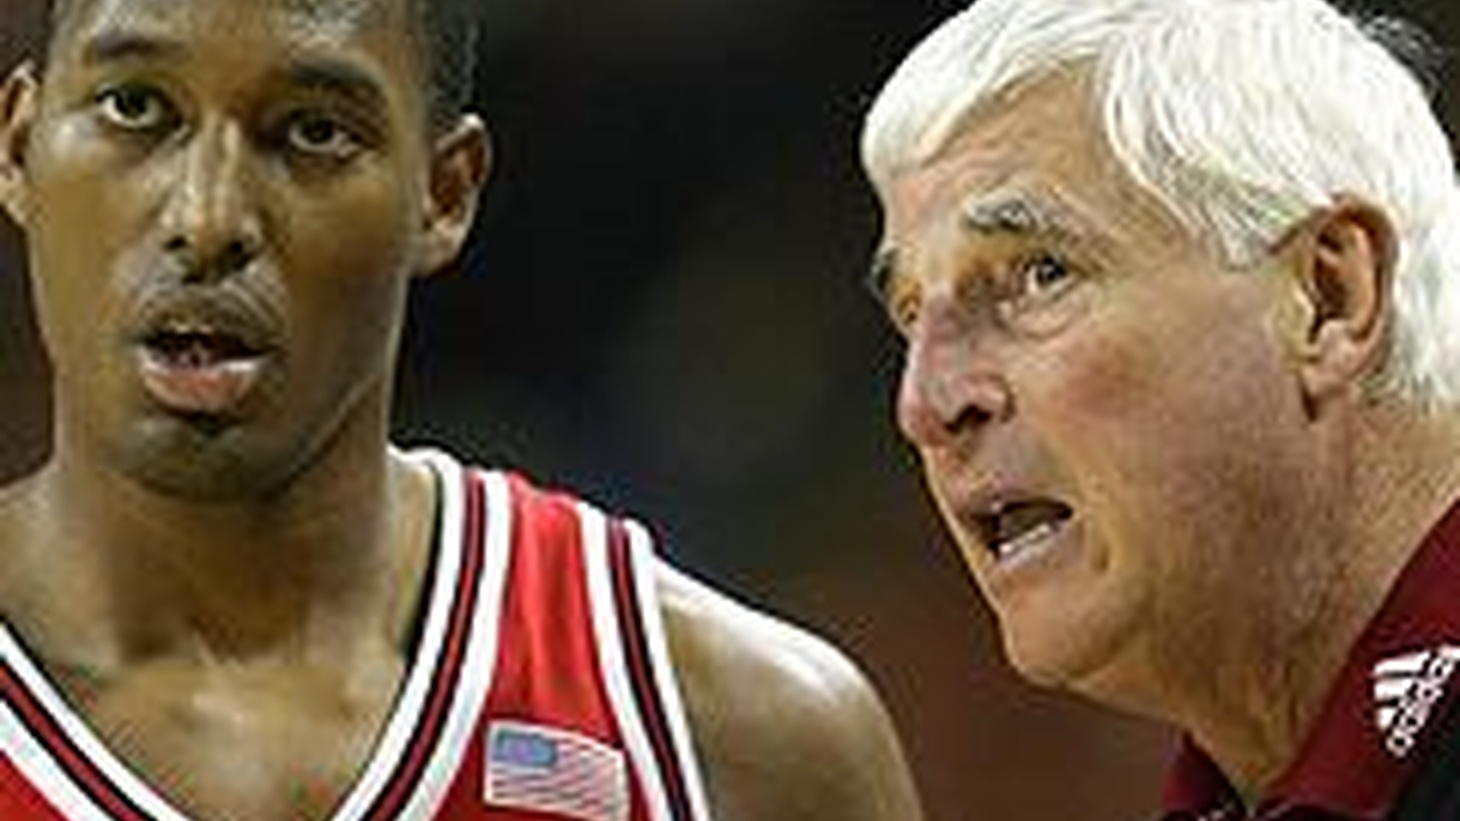 So Bobby Knight called his Hall-of-Fame coaching career quits this week. If the win/loss record is the final measurement of Knight's success, then he's a genius. In fact, he's the winningest coach in college basketball history...